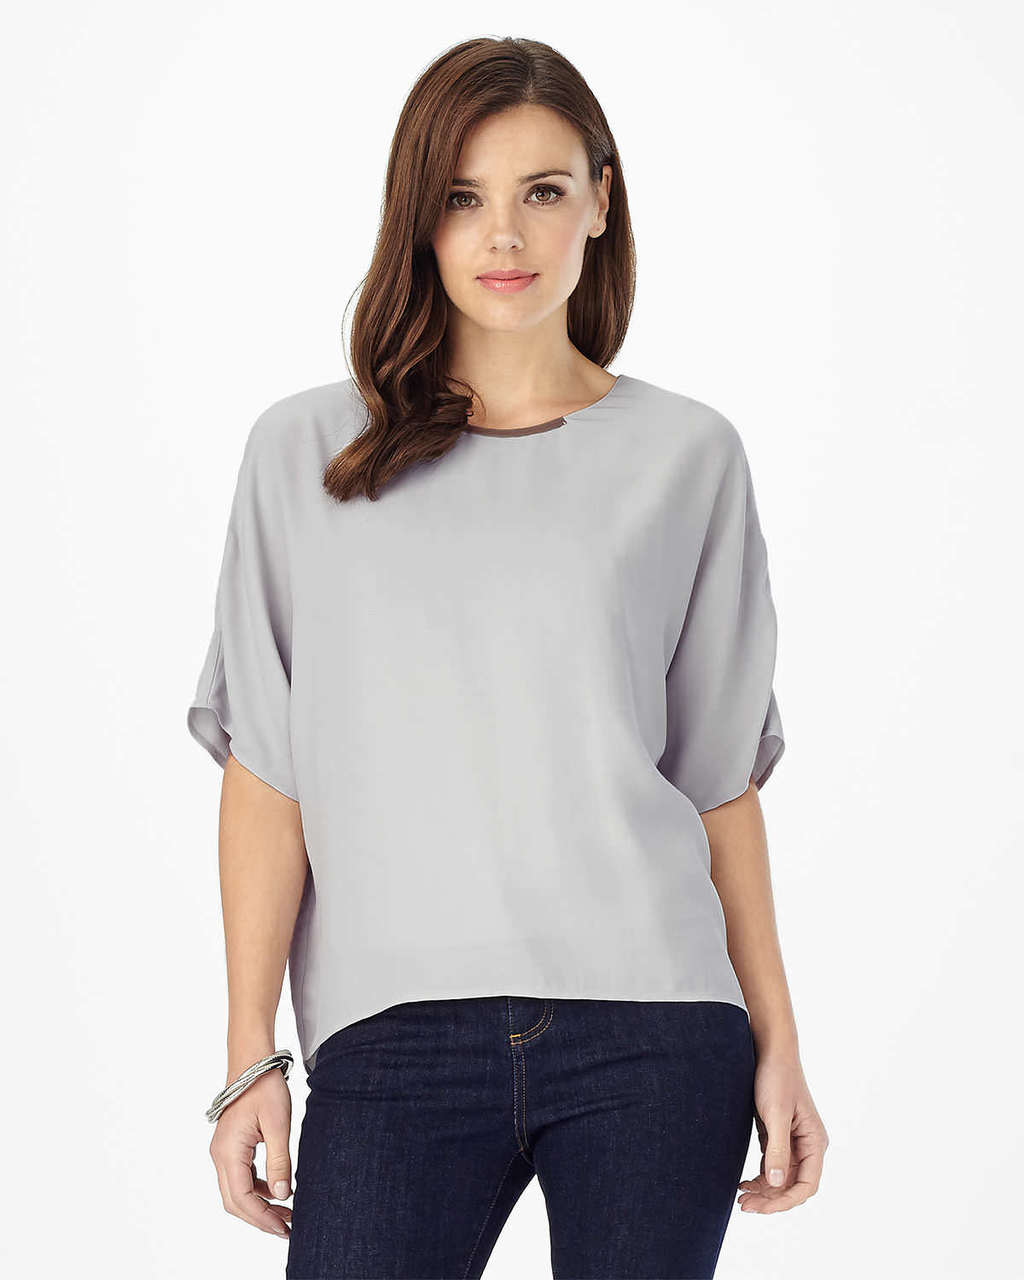 Leila Metal Bar Trim Blouse - pattern: plain; style: blouse; predominant colour: light grey; occasions: casual; length: standard; fibres: viscose/rayon - 100%; fit: loose; neckline: crew; sleeve length: half sleeve; sleeve style: standard; pattern type: fabric; texture group: other - light to midweight; season: s/s 2016; wardrobe: basic